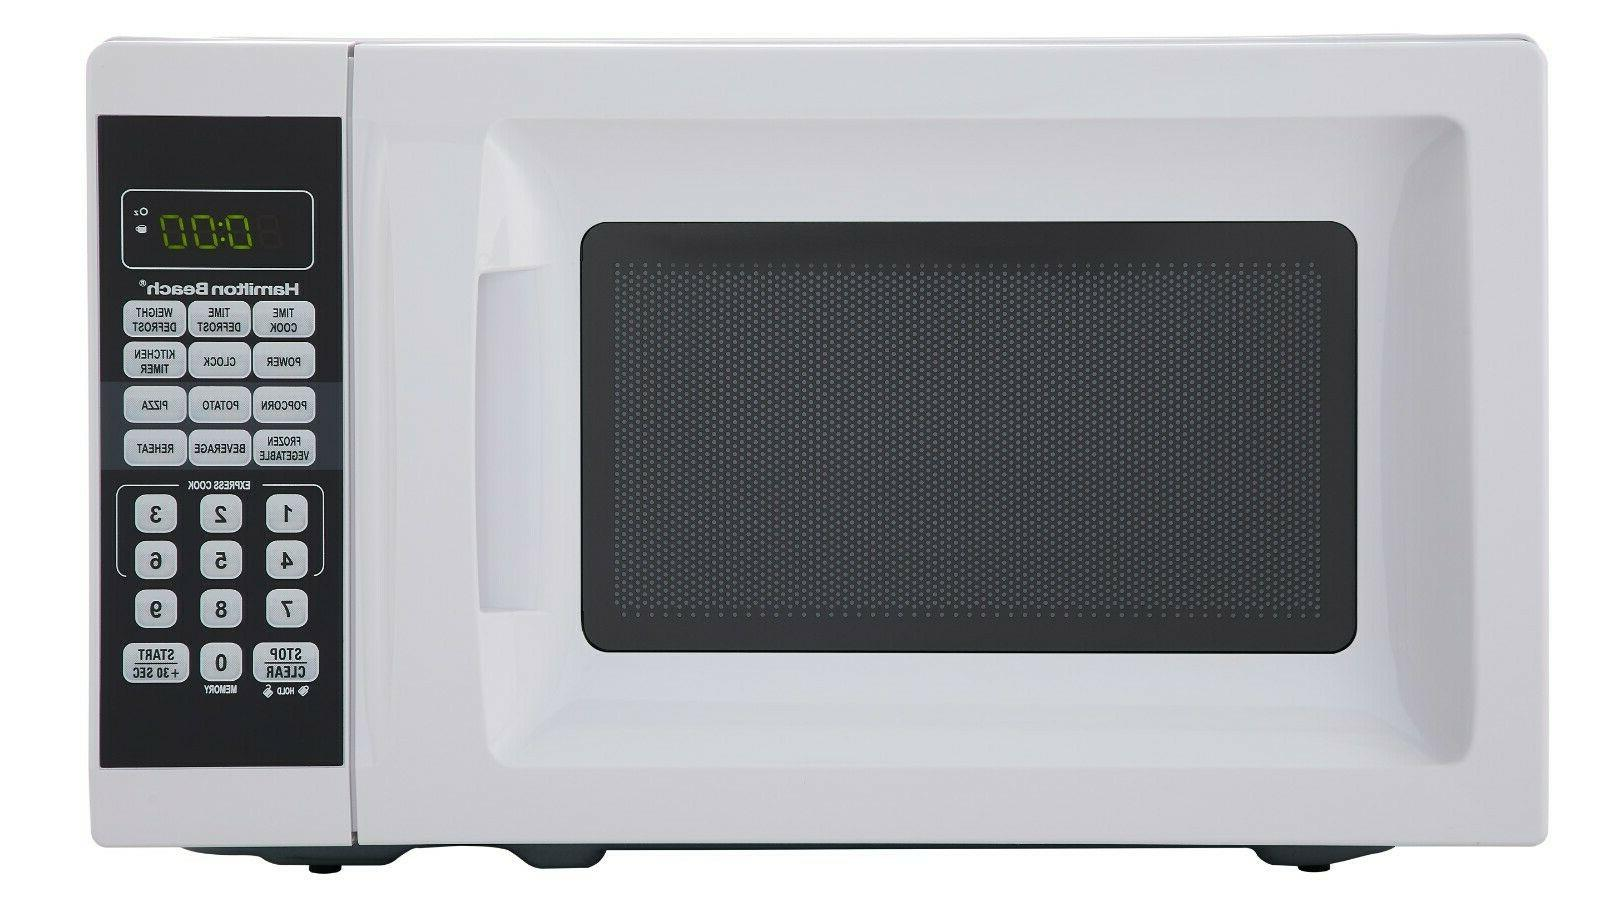 Hamilton Beach 0.7 cu ft Microwave Oven | actualColor: White